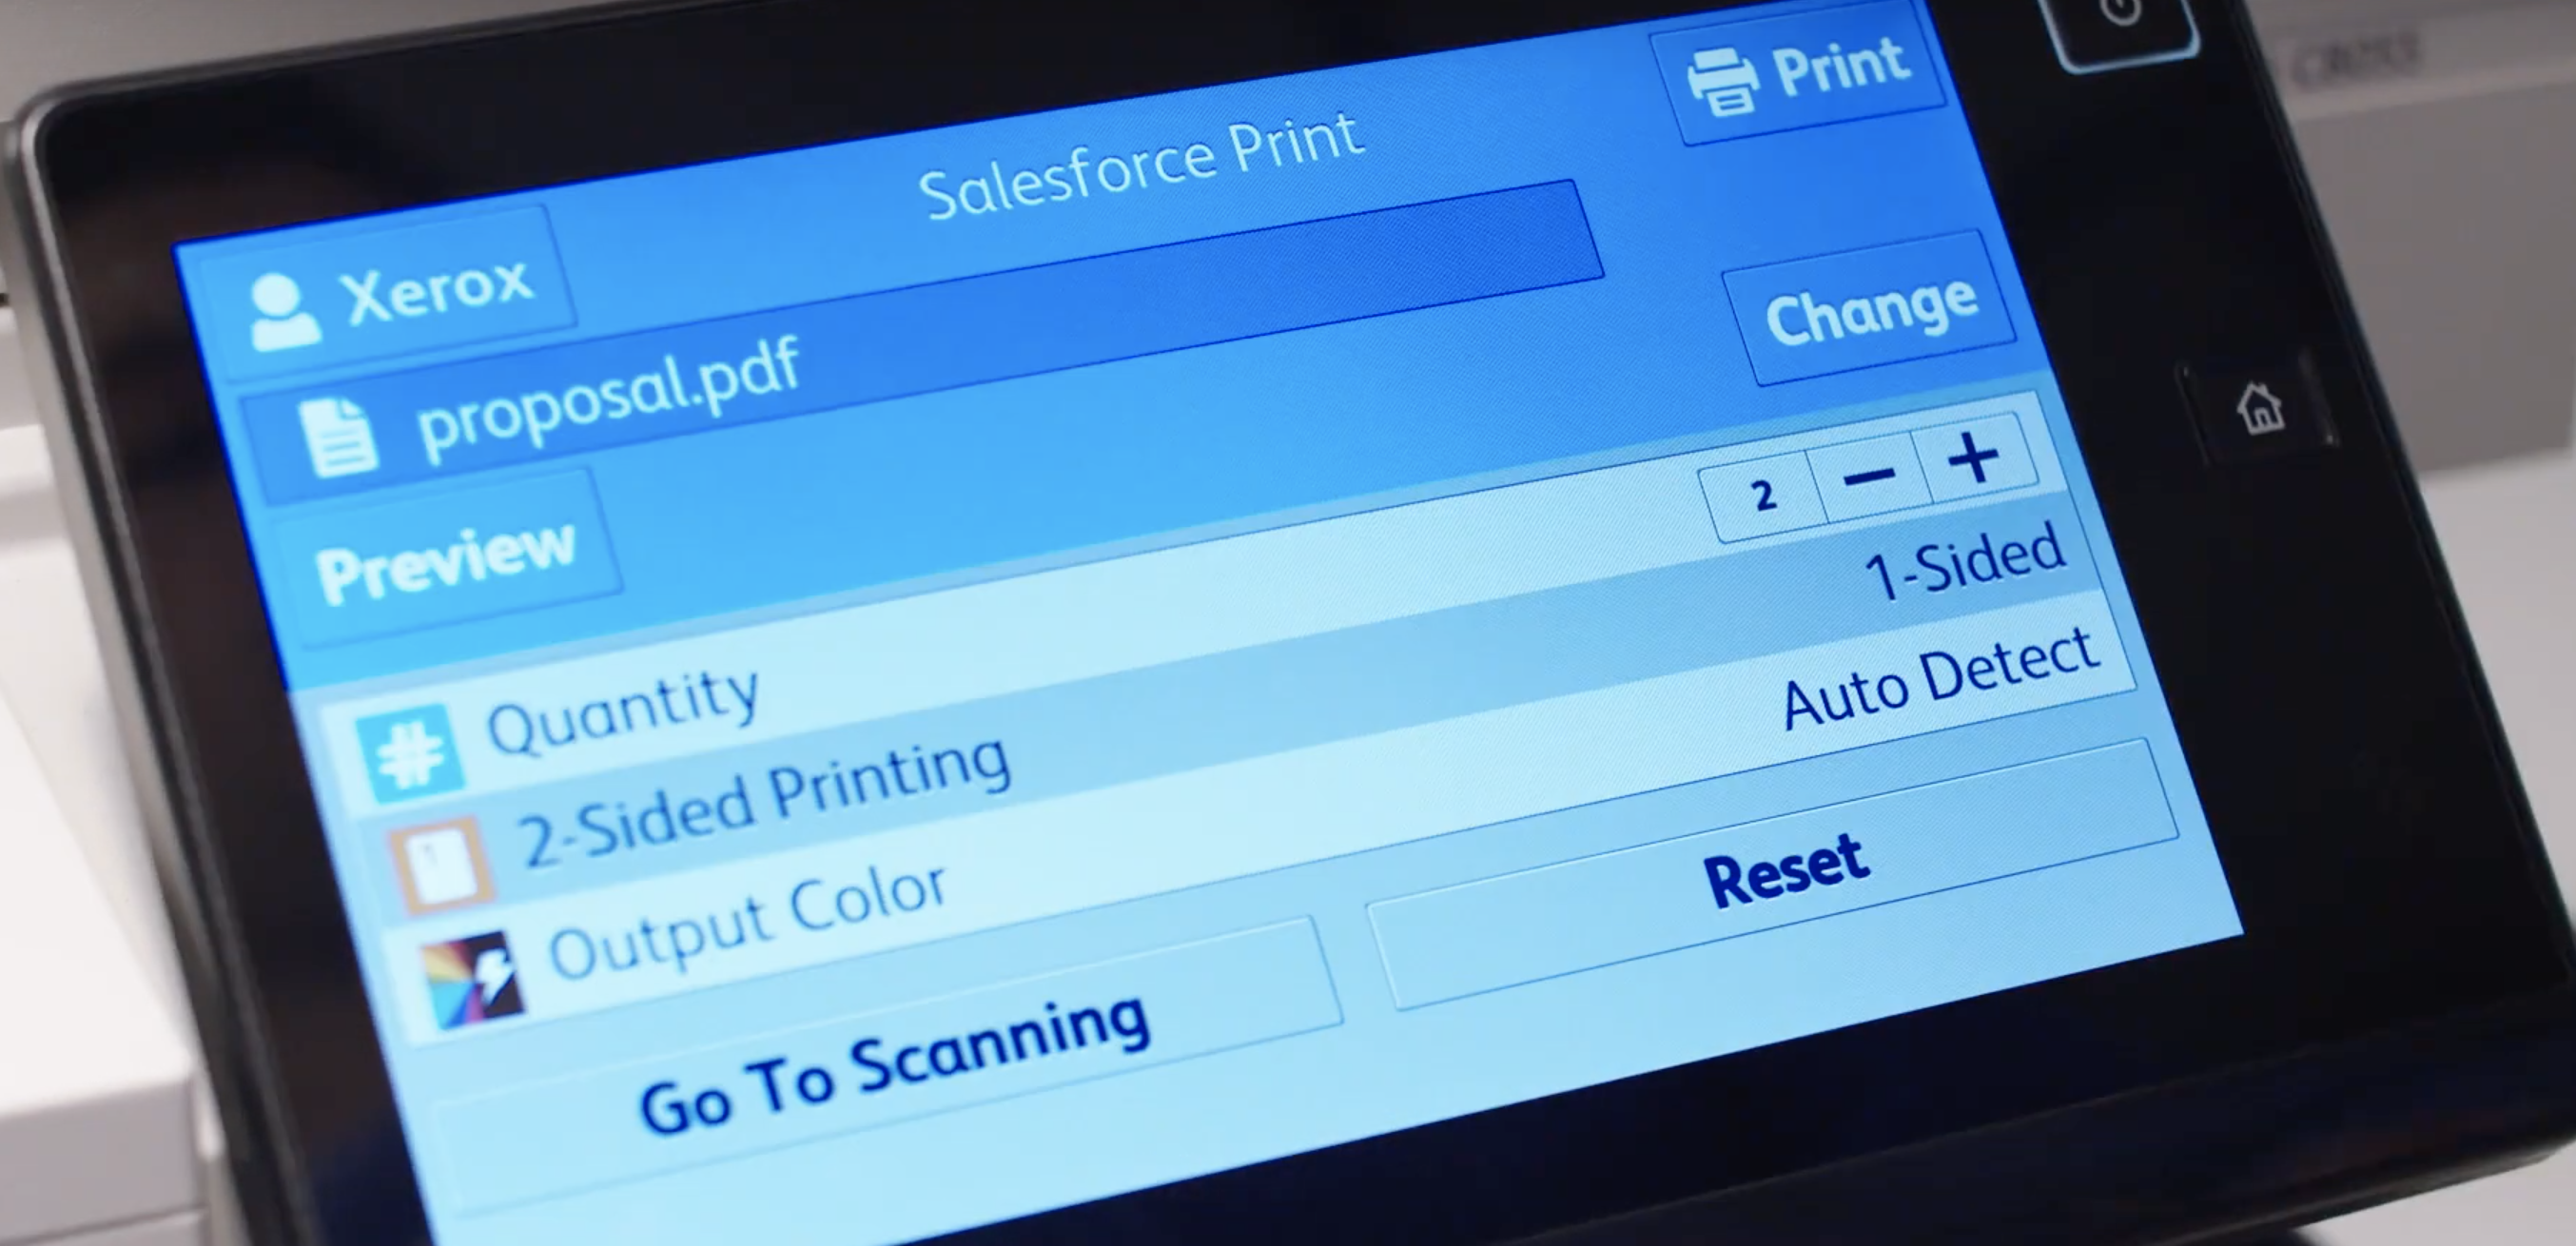 Xerox MFP Salesforce App